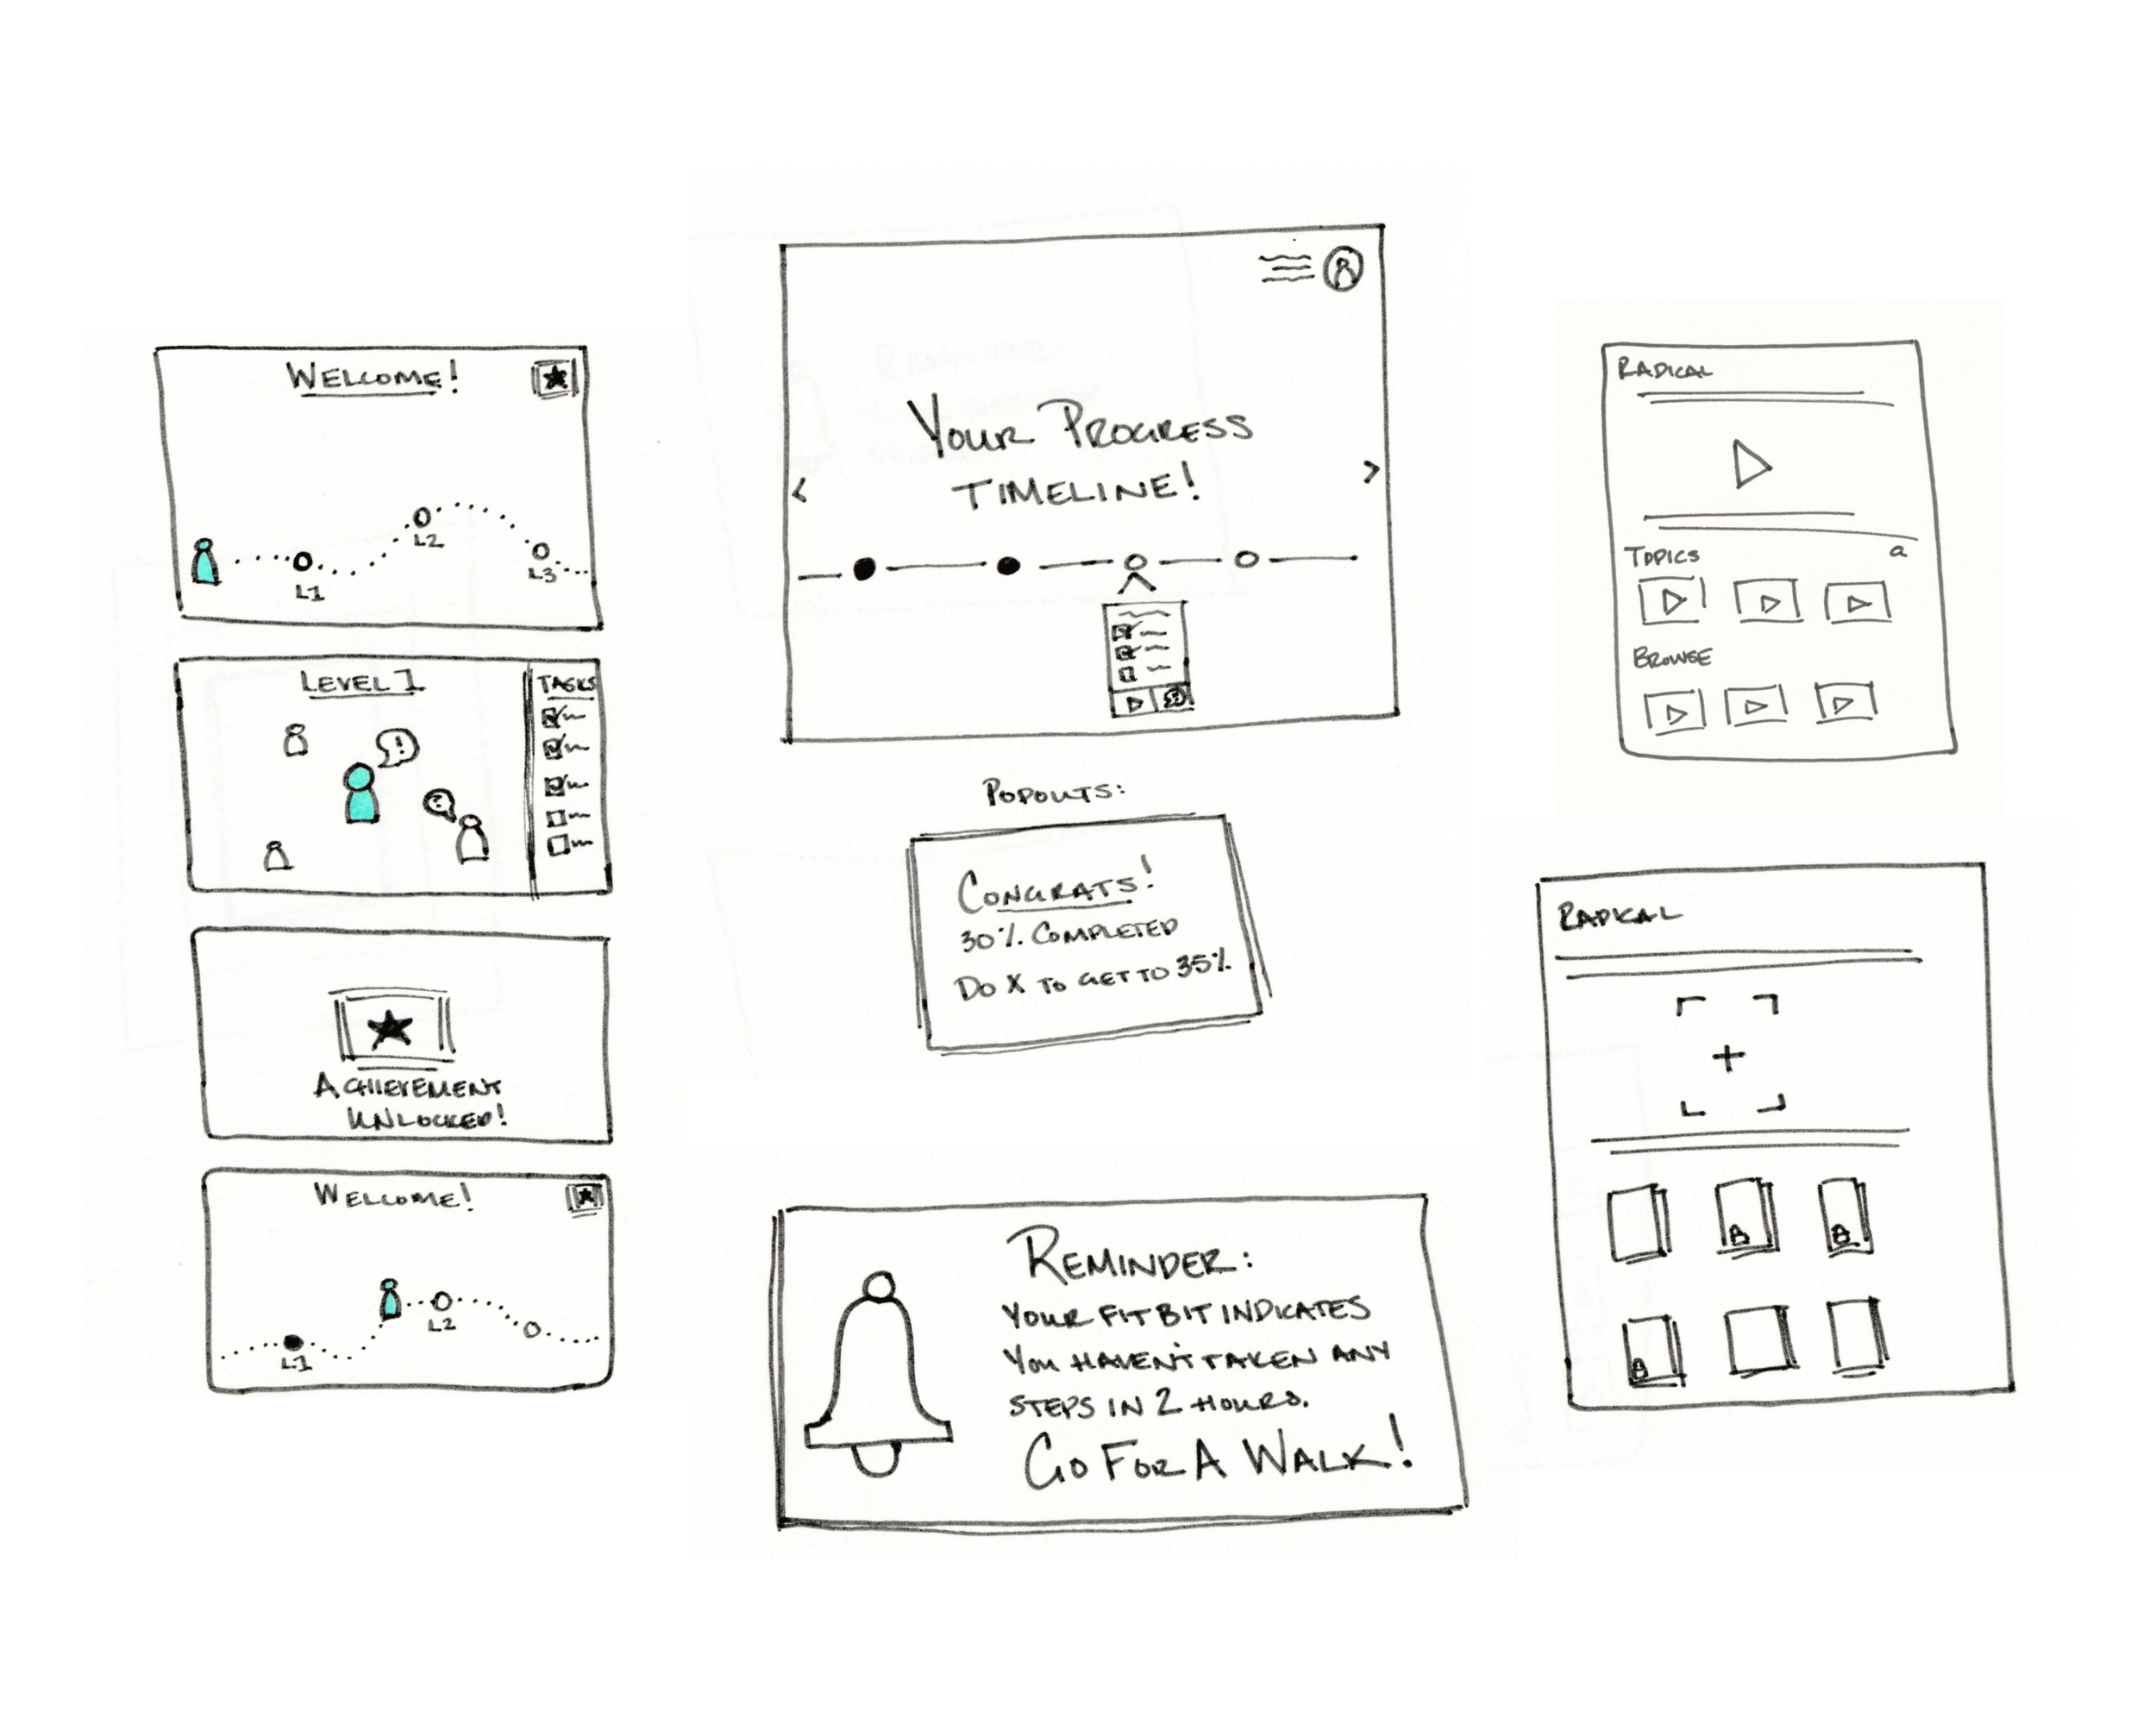 feature sketches - As a team, each designer created five initial new feature concepts. Pulling inspiration from the user journey map opportunities that were uncovered, I focused on elements that could increase the users engagement early in writing process, progress tools, and interactive design features.